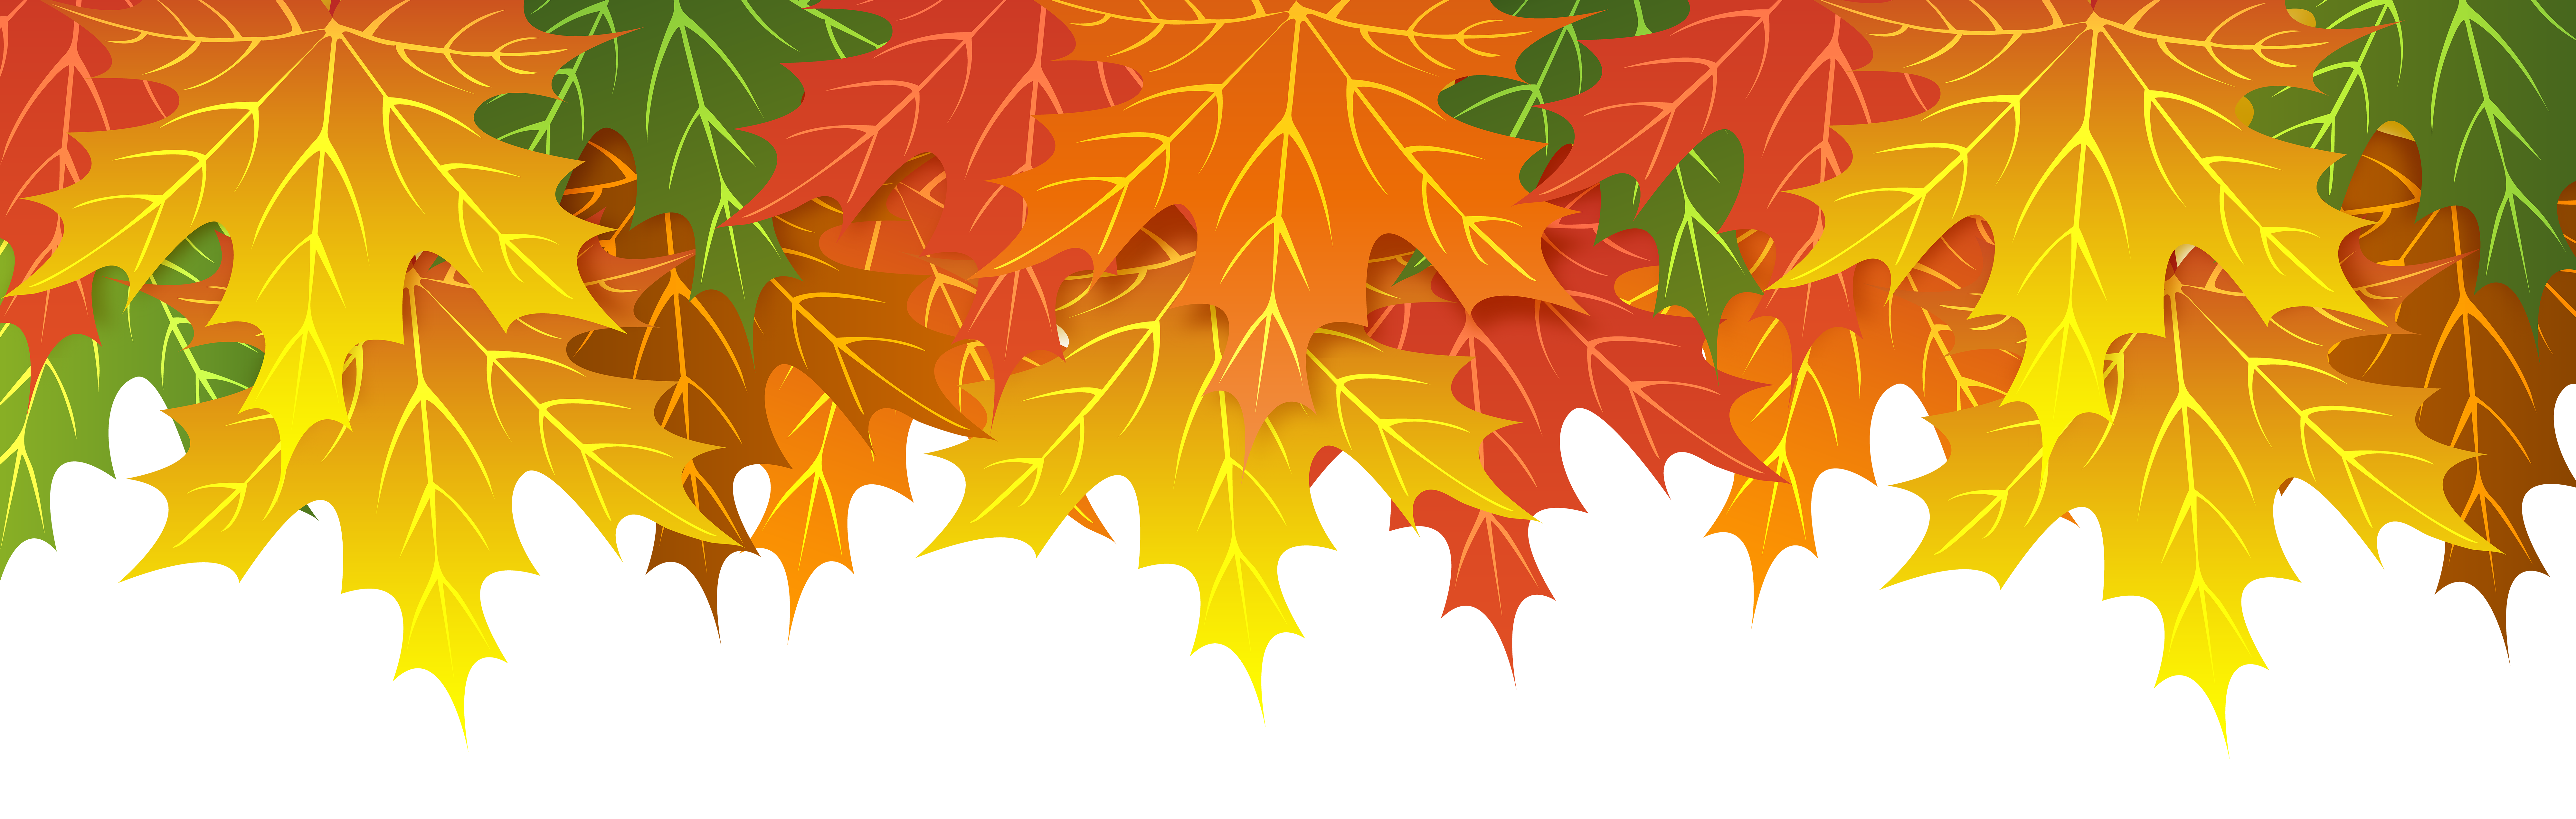 Fall Leaves Upper Border PNG Clip Art Image.